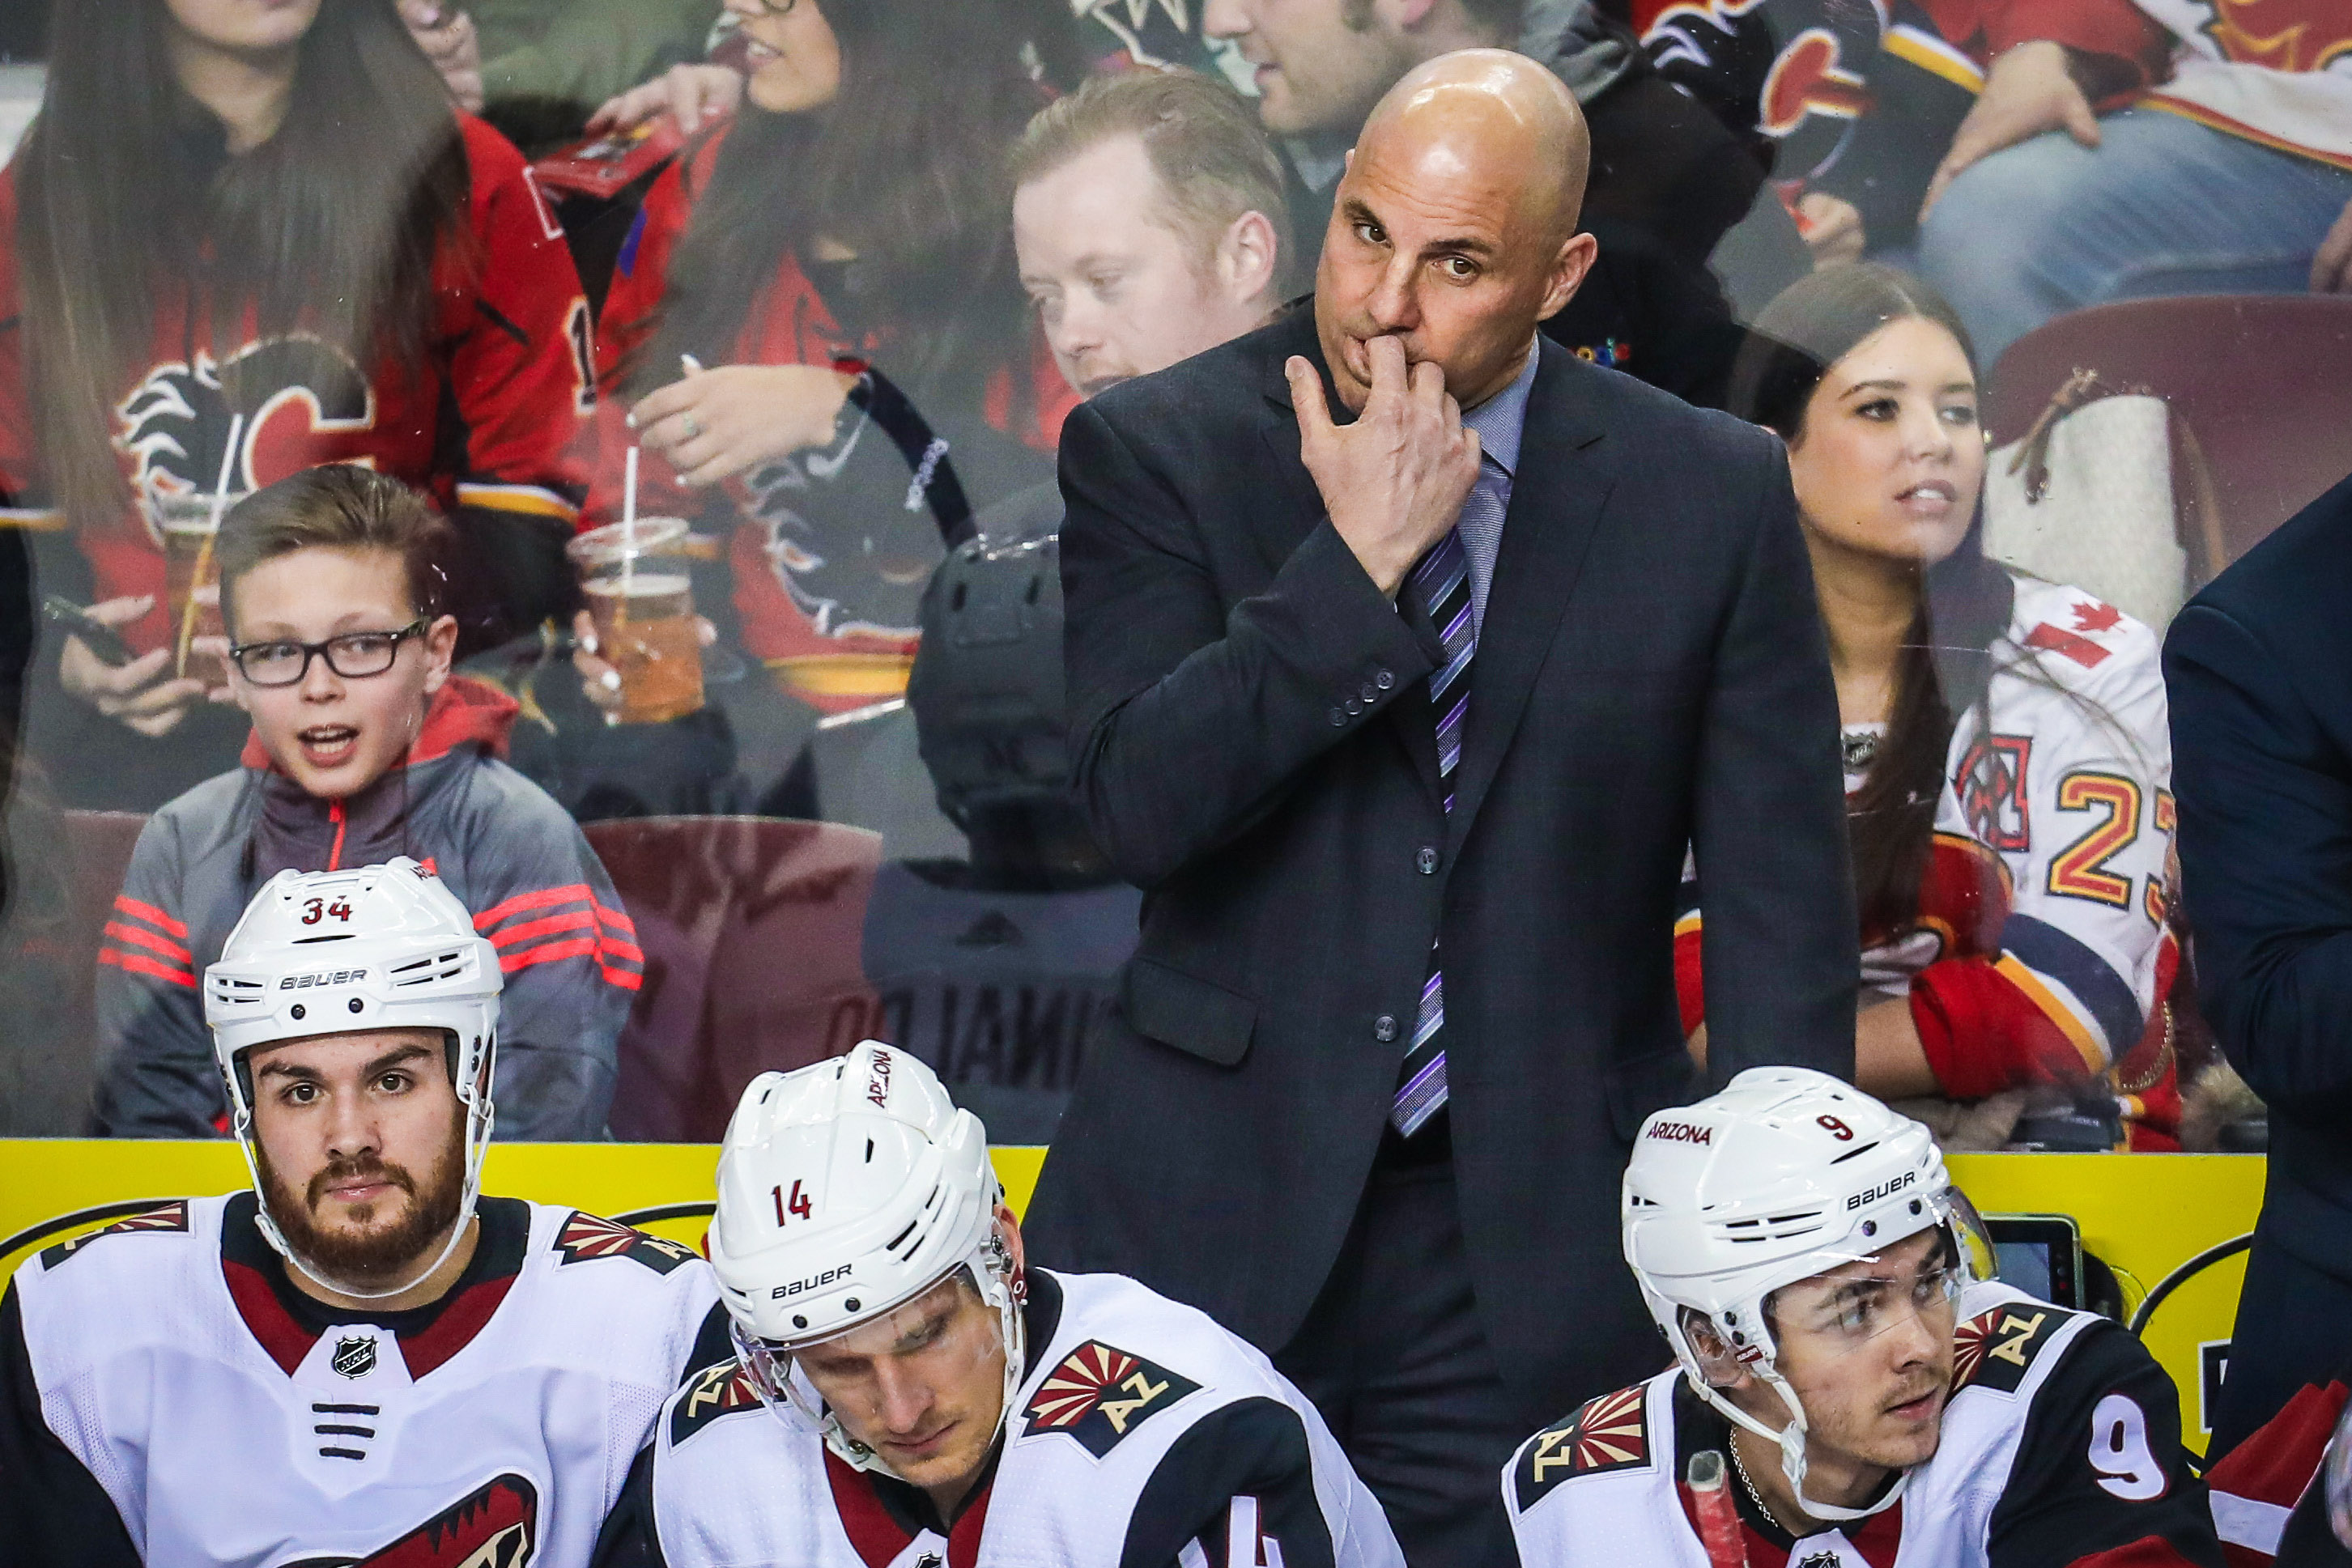 Apr 3, 2018; Calgary, Alberta, CAN; Arizona Coyotes head coach Rick Tocchet on his bench during the first period against the Calgary Flames at Scotiabank Saddledome